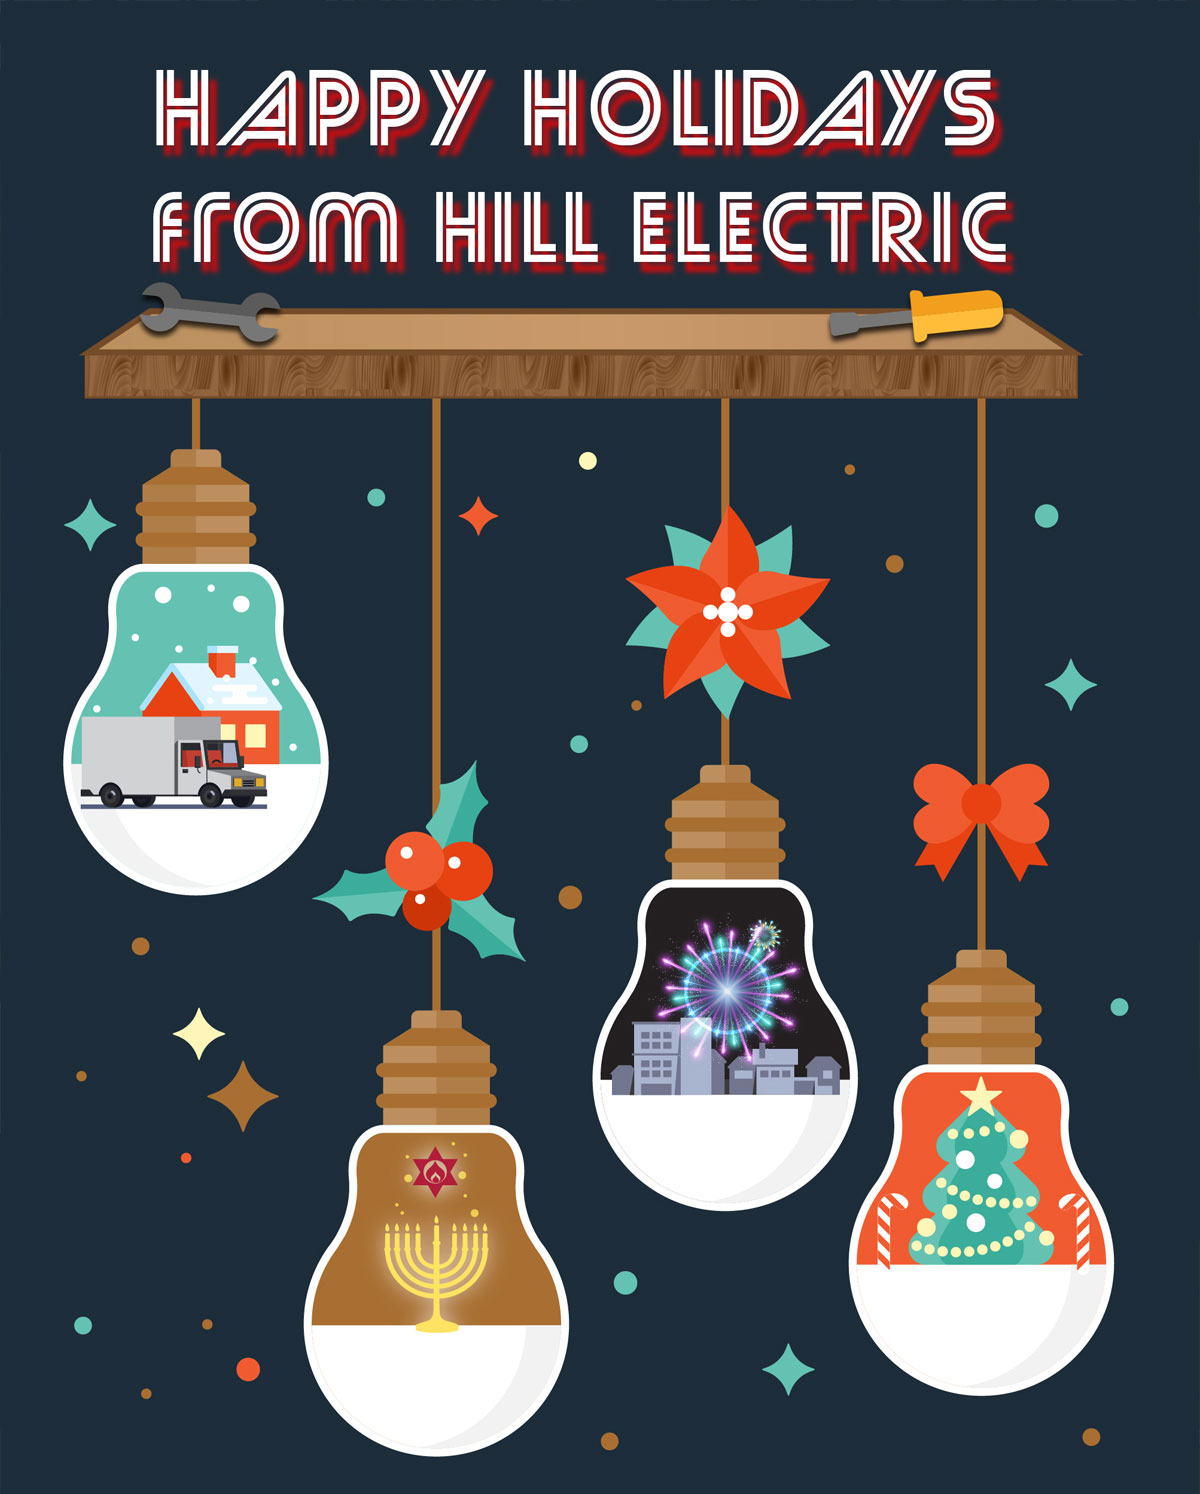 Happy Holidays from Hill Electric!